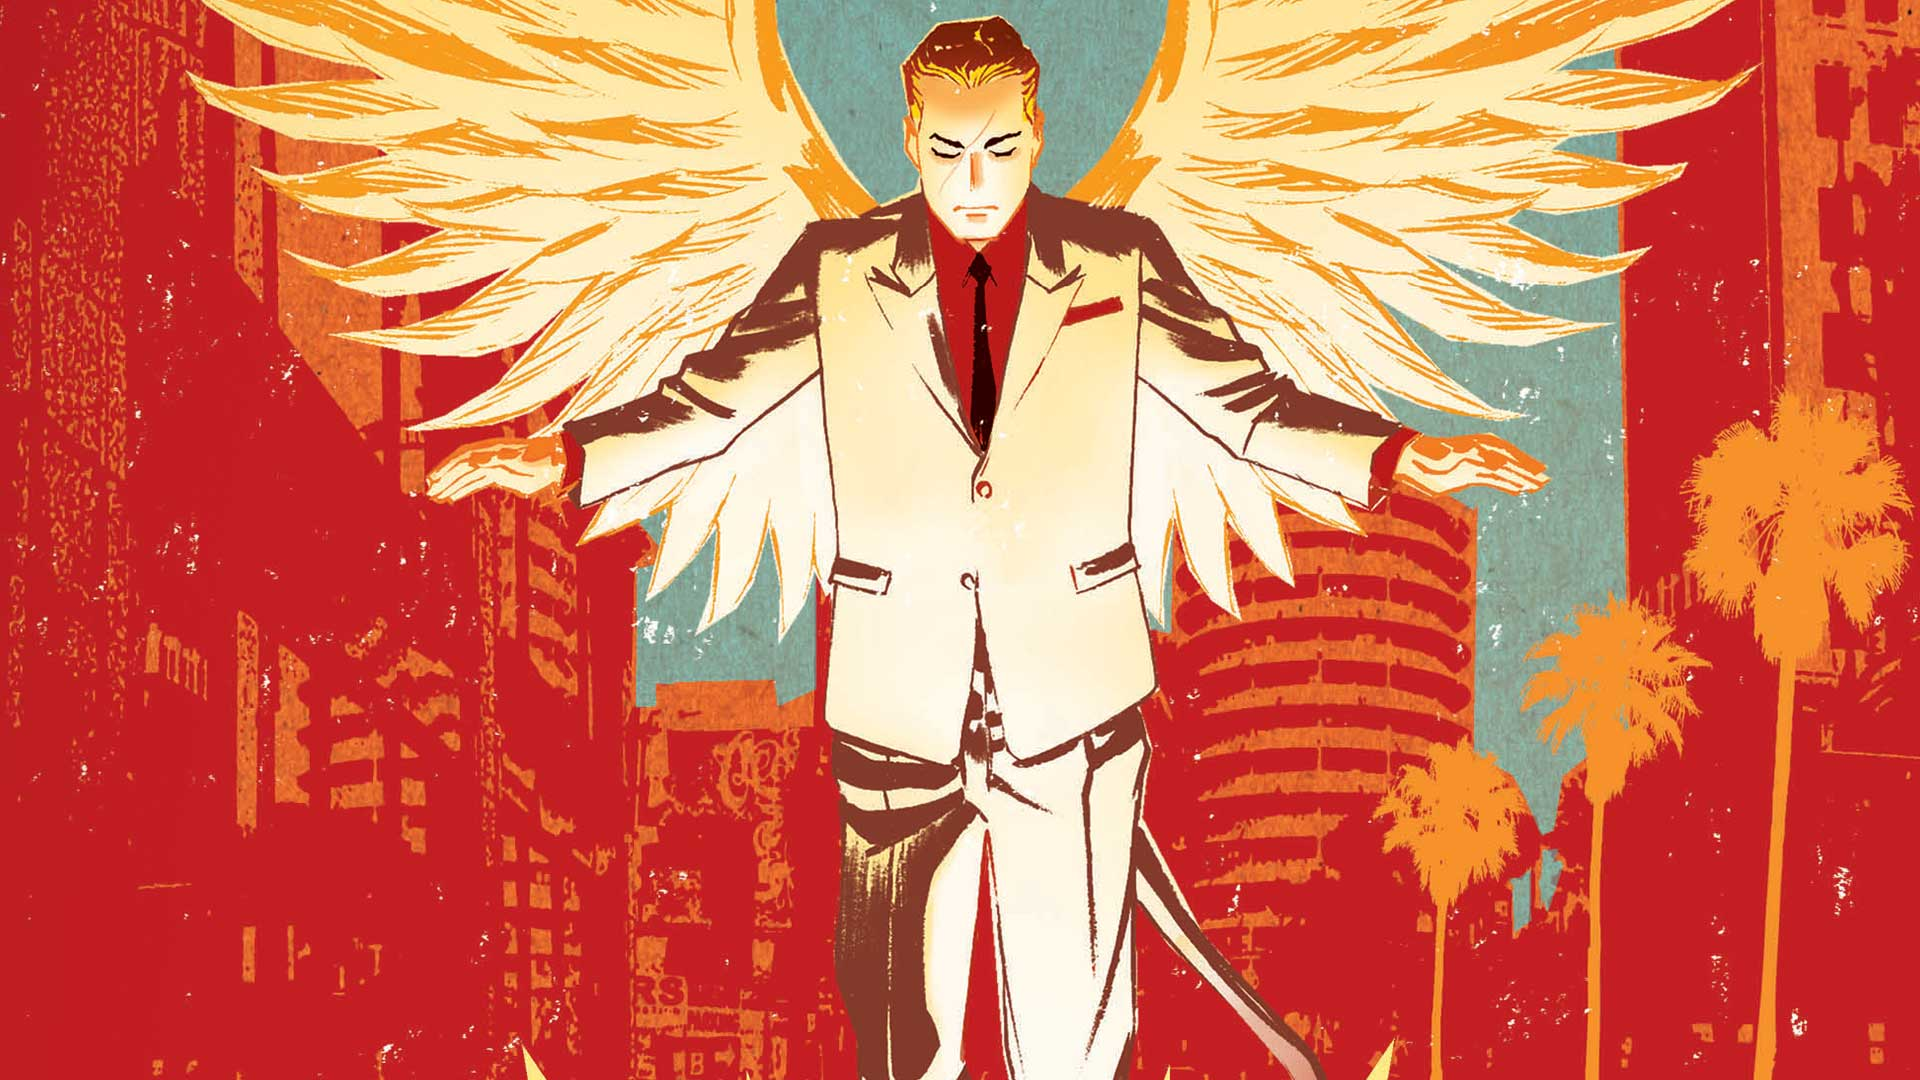 Drawn wings What Lucifer DC Need 101: